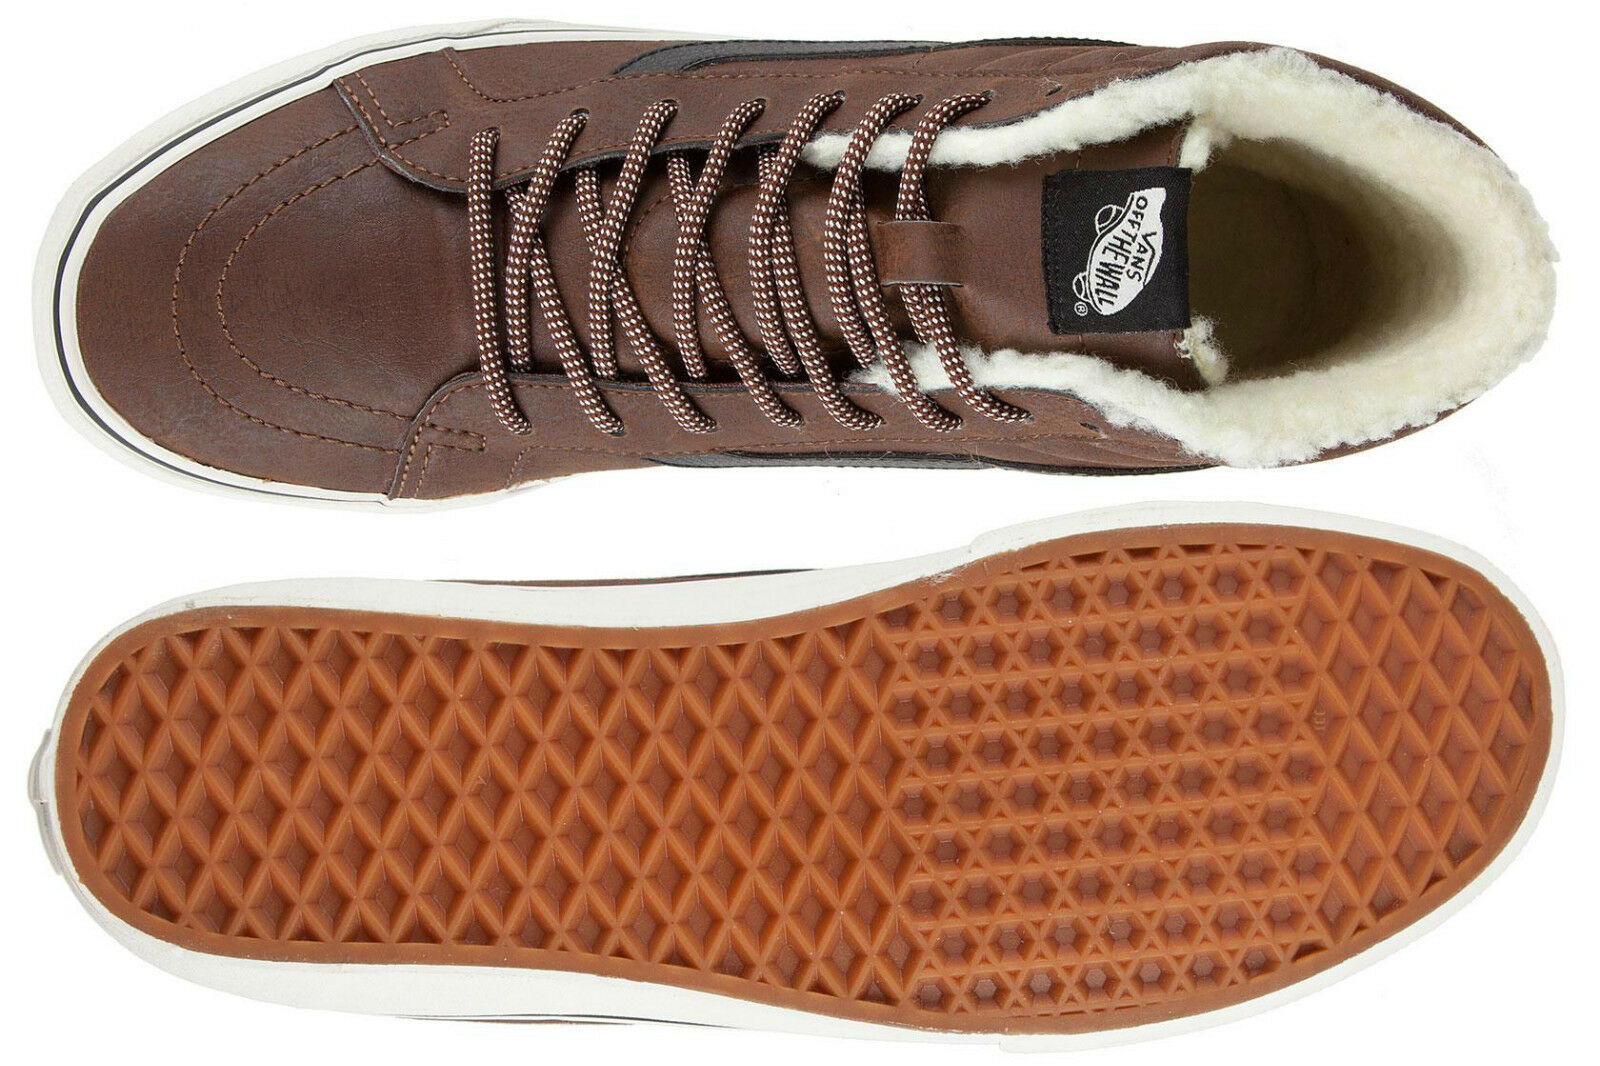 abac4fc0dc VANS Sk8 Hi Reissue Trainers Leather Fleece Brown Marshmallow Mid Boot Size  4.5 for sale online